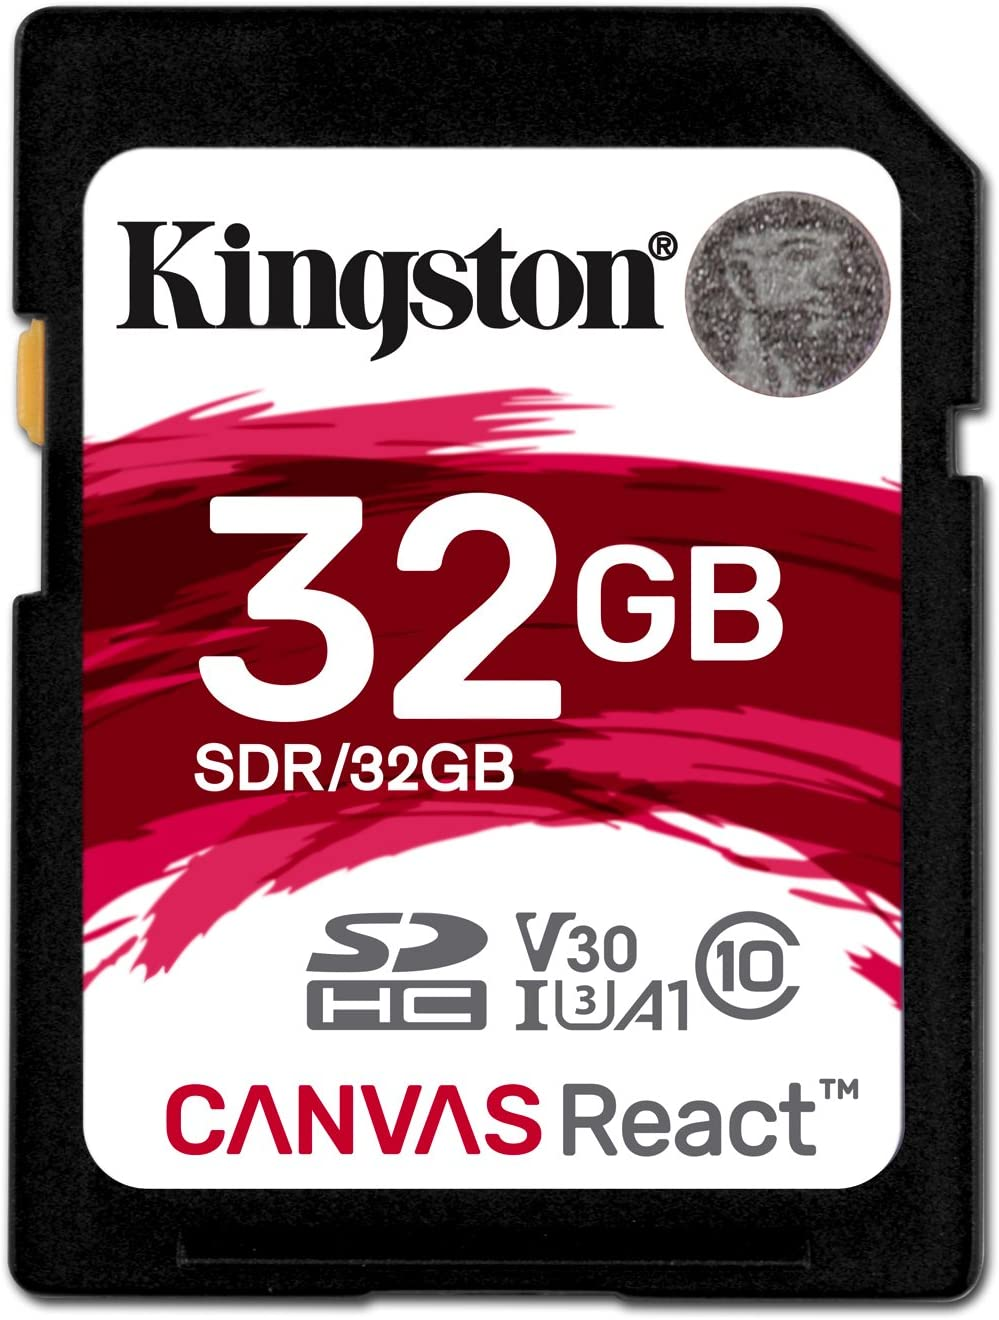 SanFlash Kingston 64GB React MicroSDXC for Karbonn A108 with SD Adapter 100MBs Works with Kingston